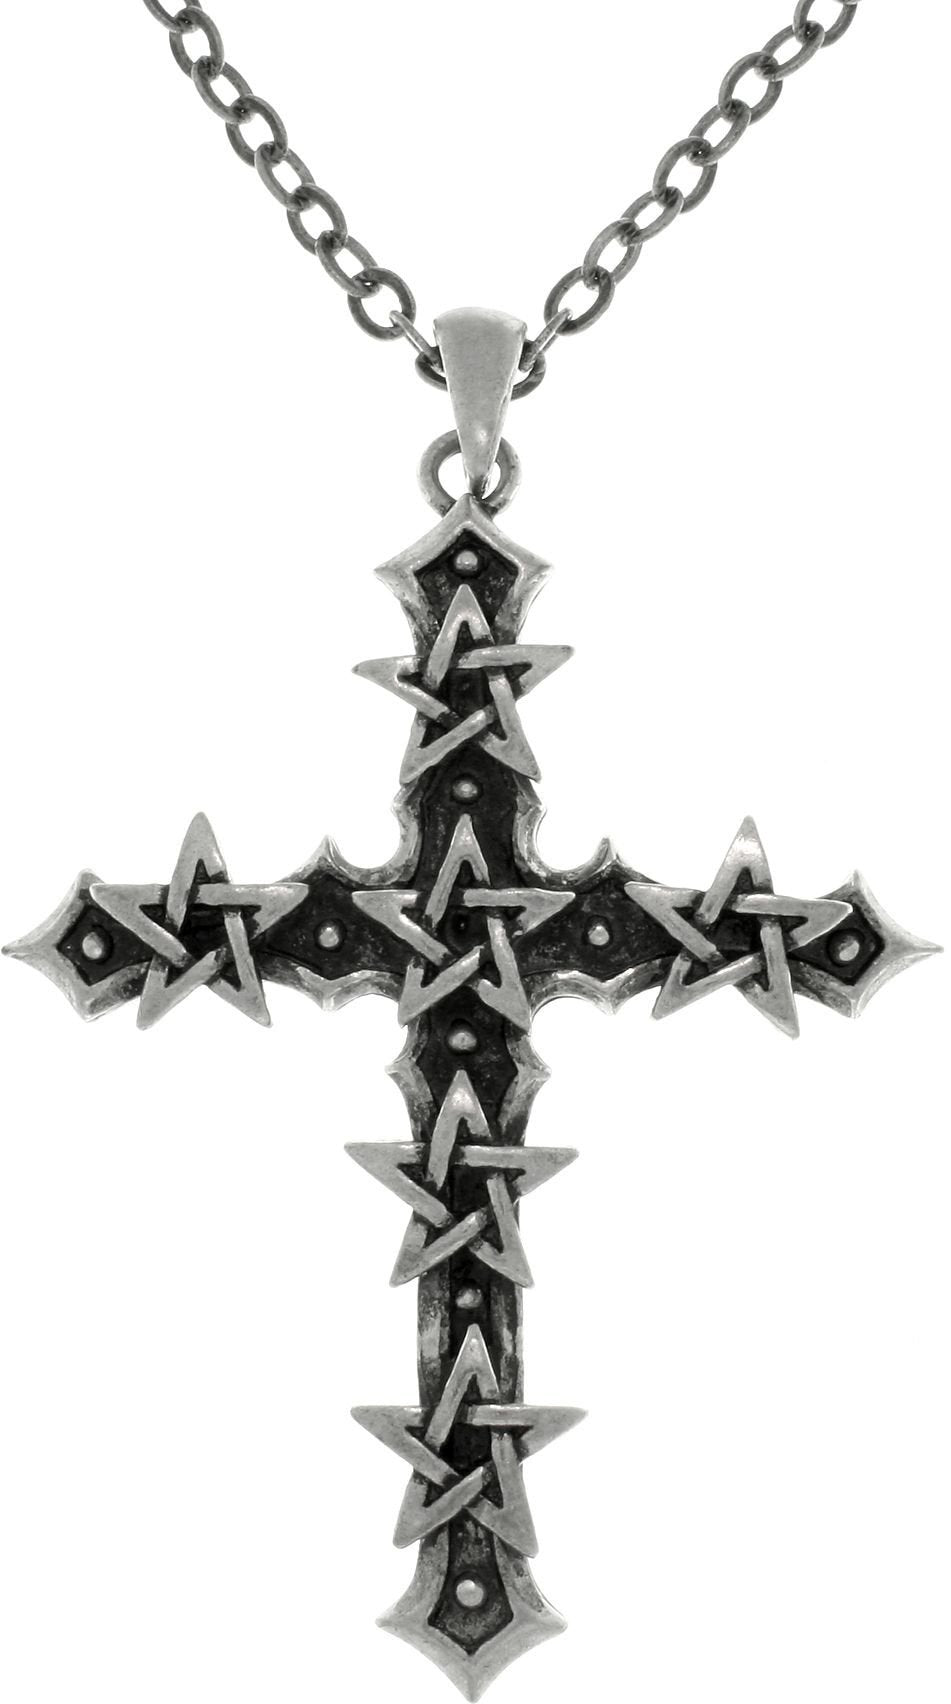 Jewelry Trends Pewter Star Studded Cross Pendant on Link Chain Necklace